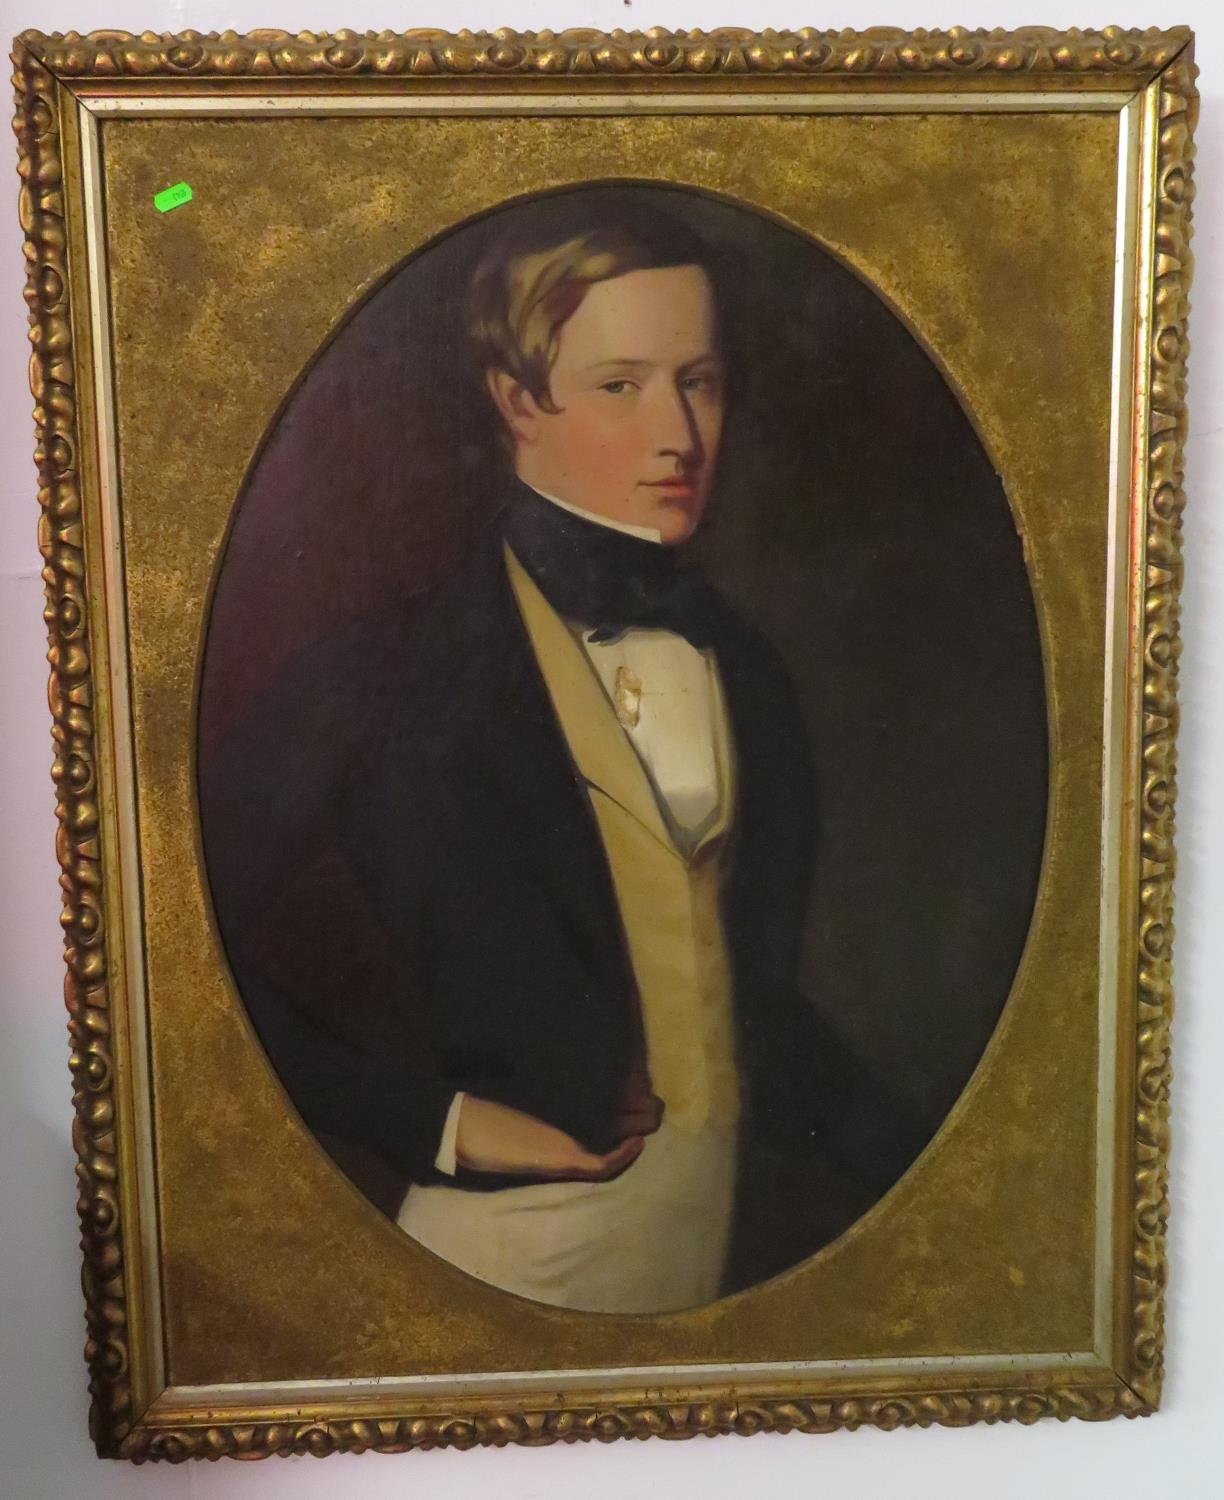 Lot 20 - Oval portrait oil on canvas of Gentleman